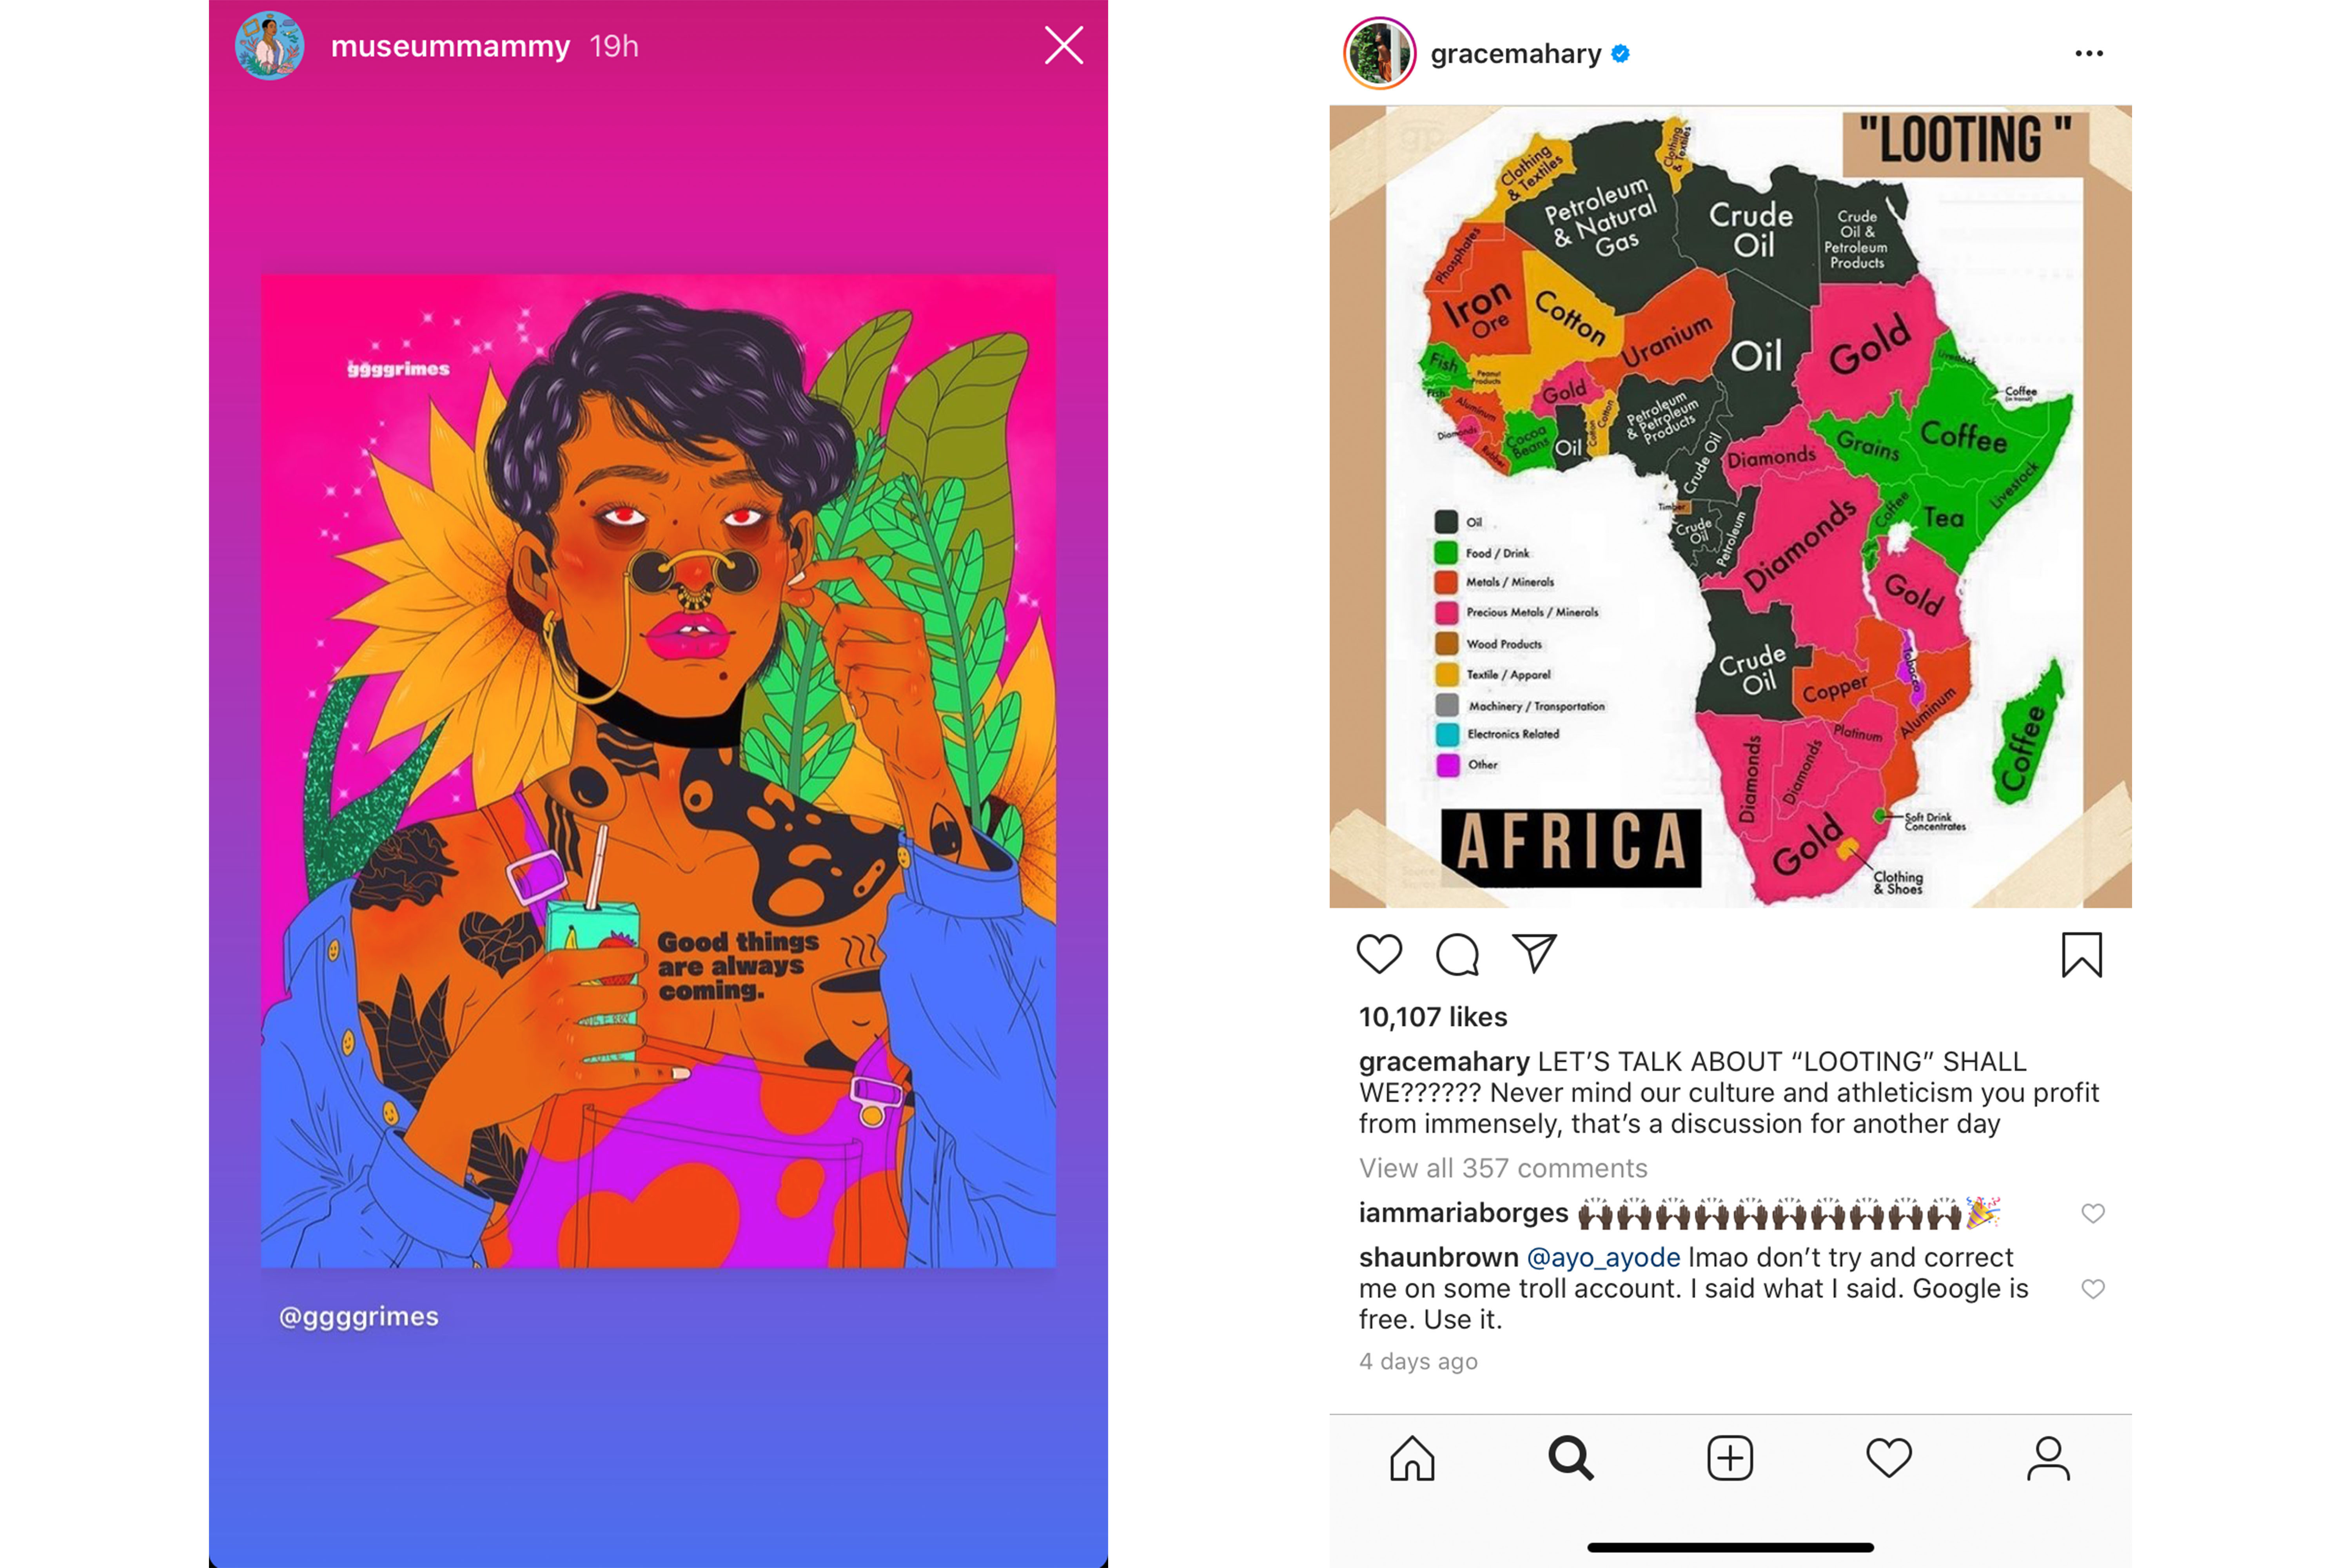 Instagram posts from Kimberly Drew (illustration by ggggrimes) and Grace Mahary.